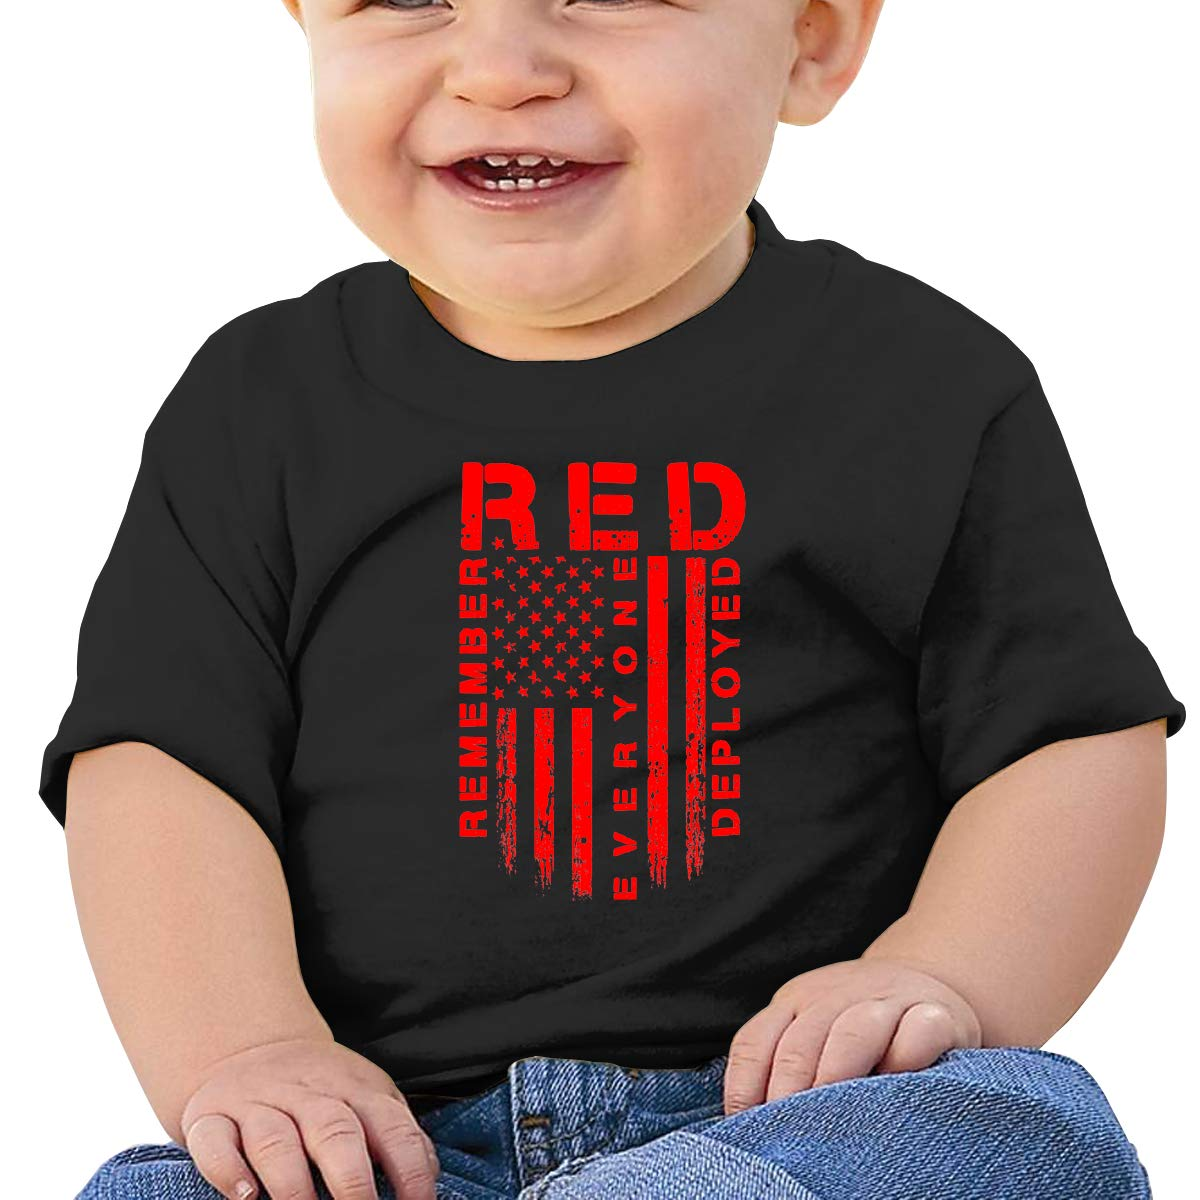 Red Friday American Flag Toddler Baby Newborn Short Sleeve T Shirts 6-24 Month Cotton Tops